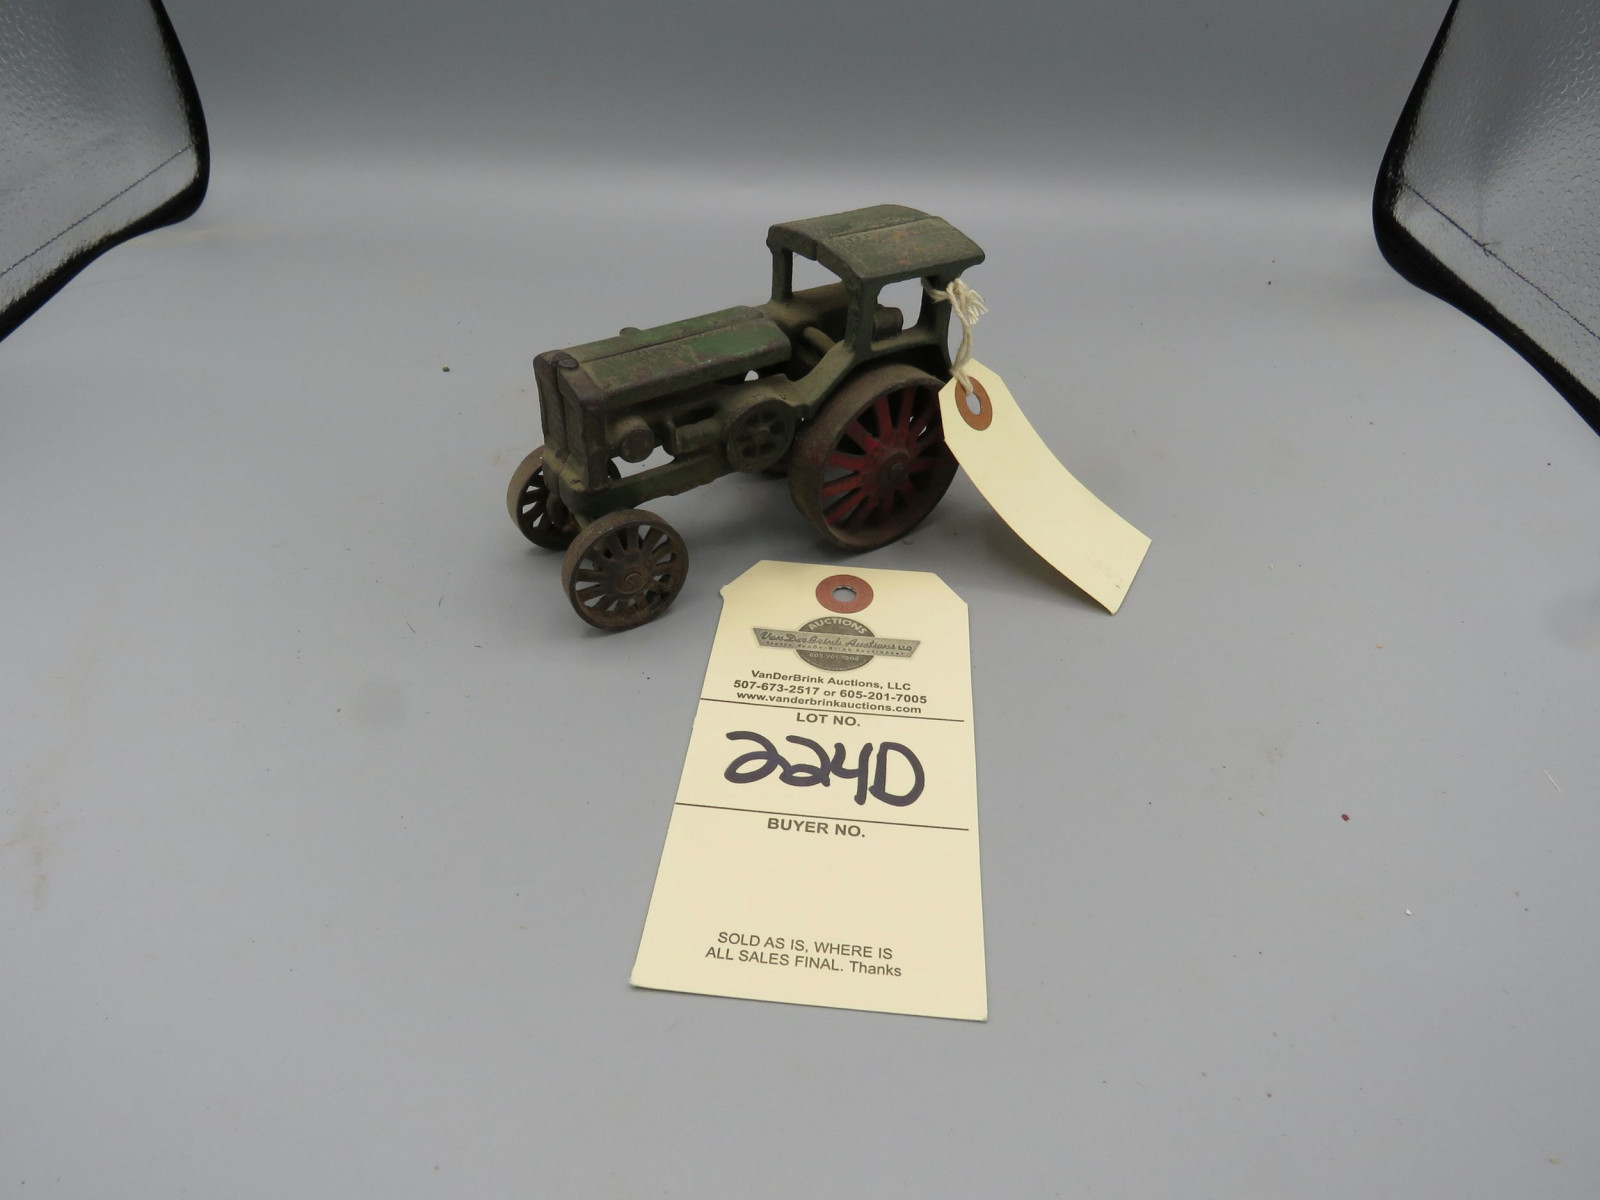 Vintage Cast Iron Avery Steam Traction Tractor @1921 Approx. 9 inches - Image 1